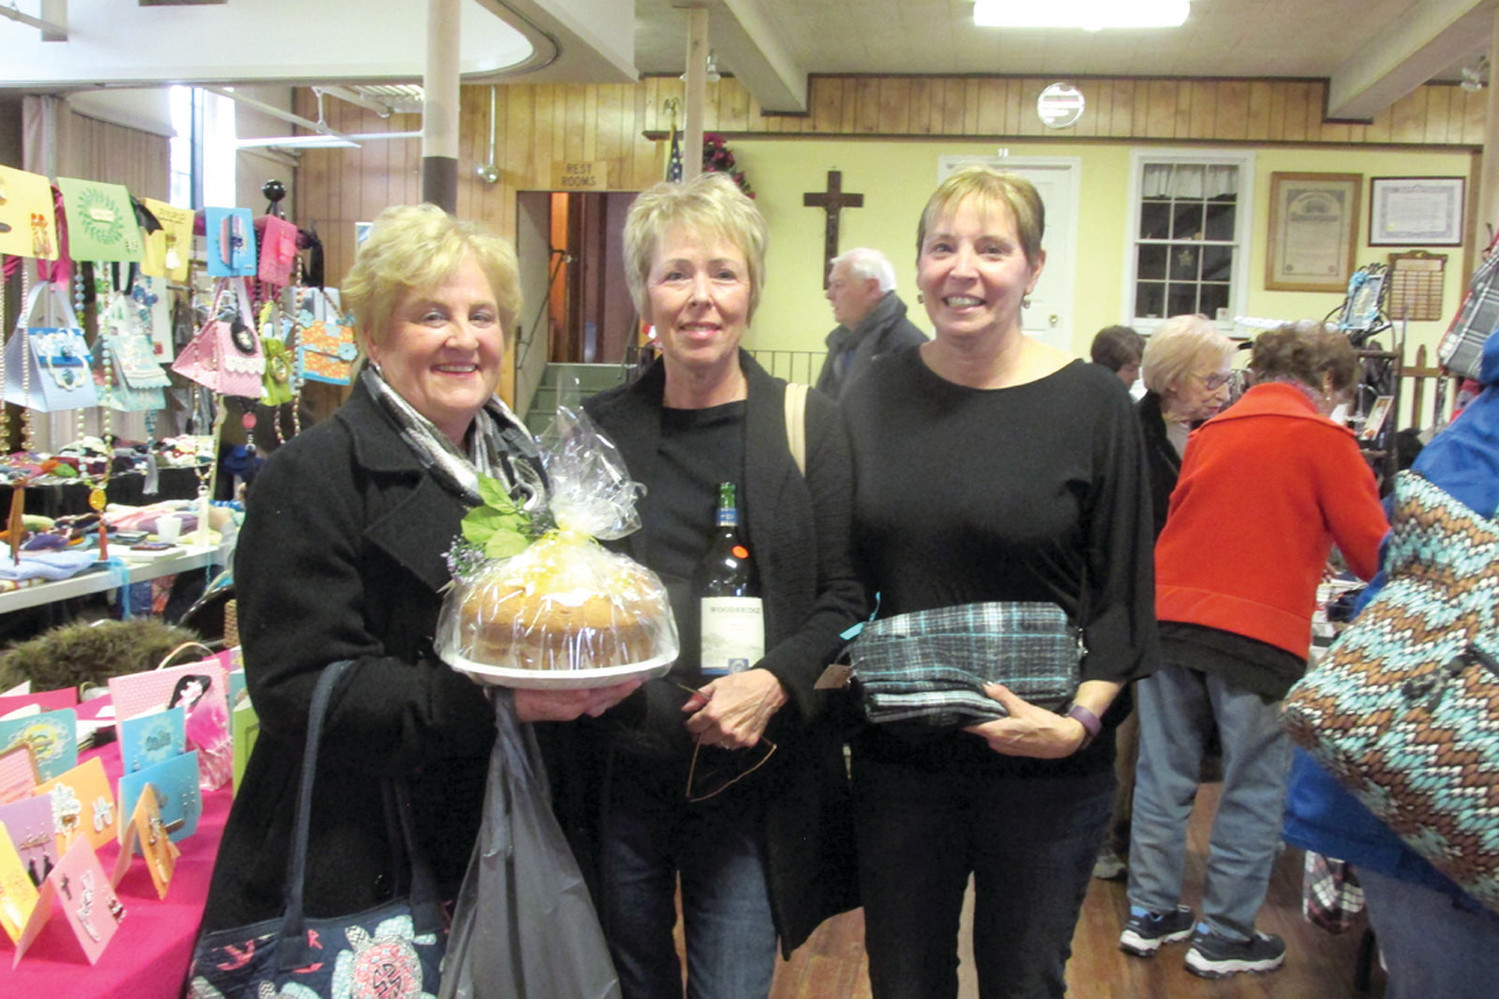 CHAIR'S CORNER: Fran Wilkie (right), enjoys some conversation with friends Sue Marcaccio and Karen Spins